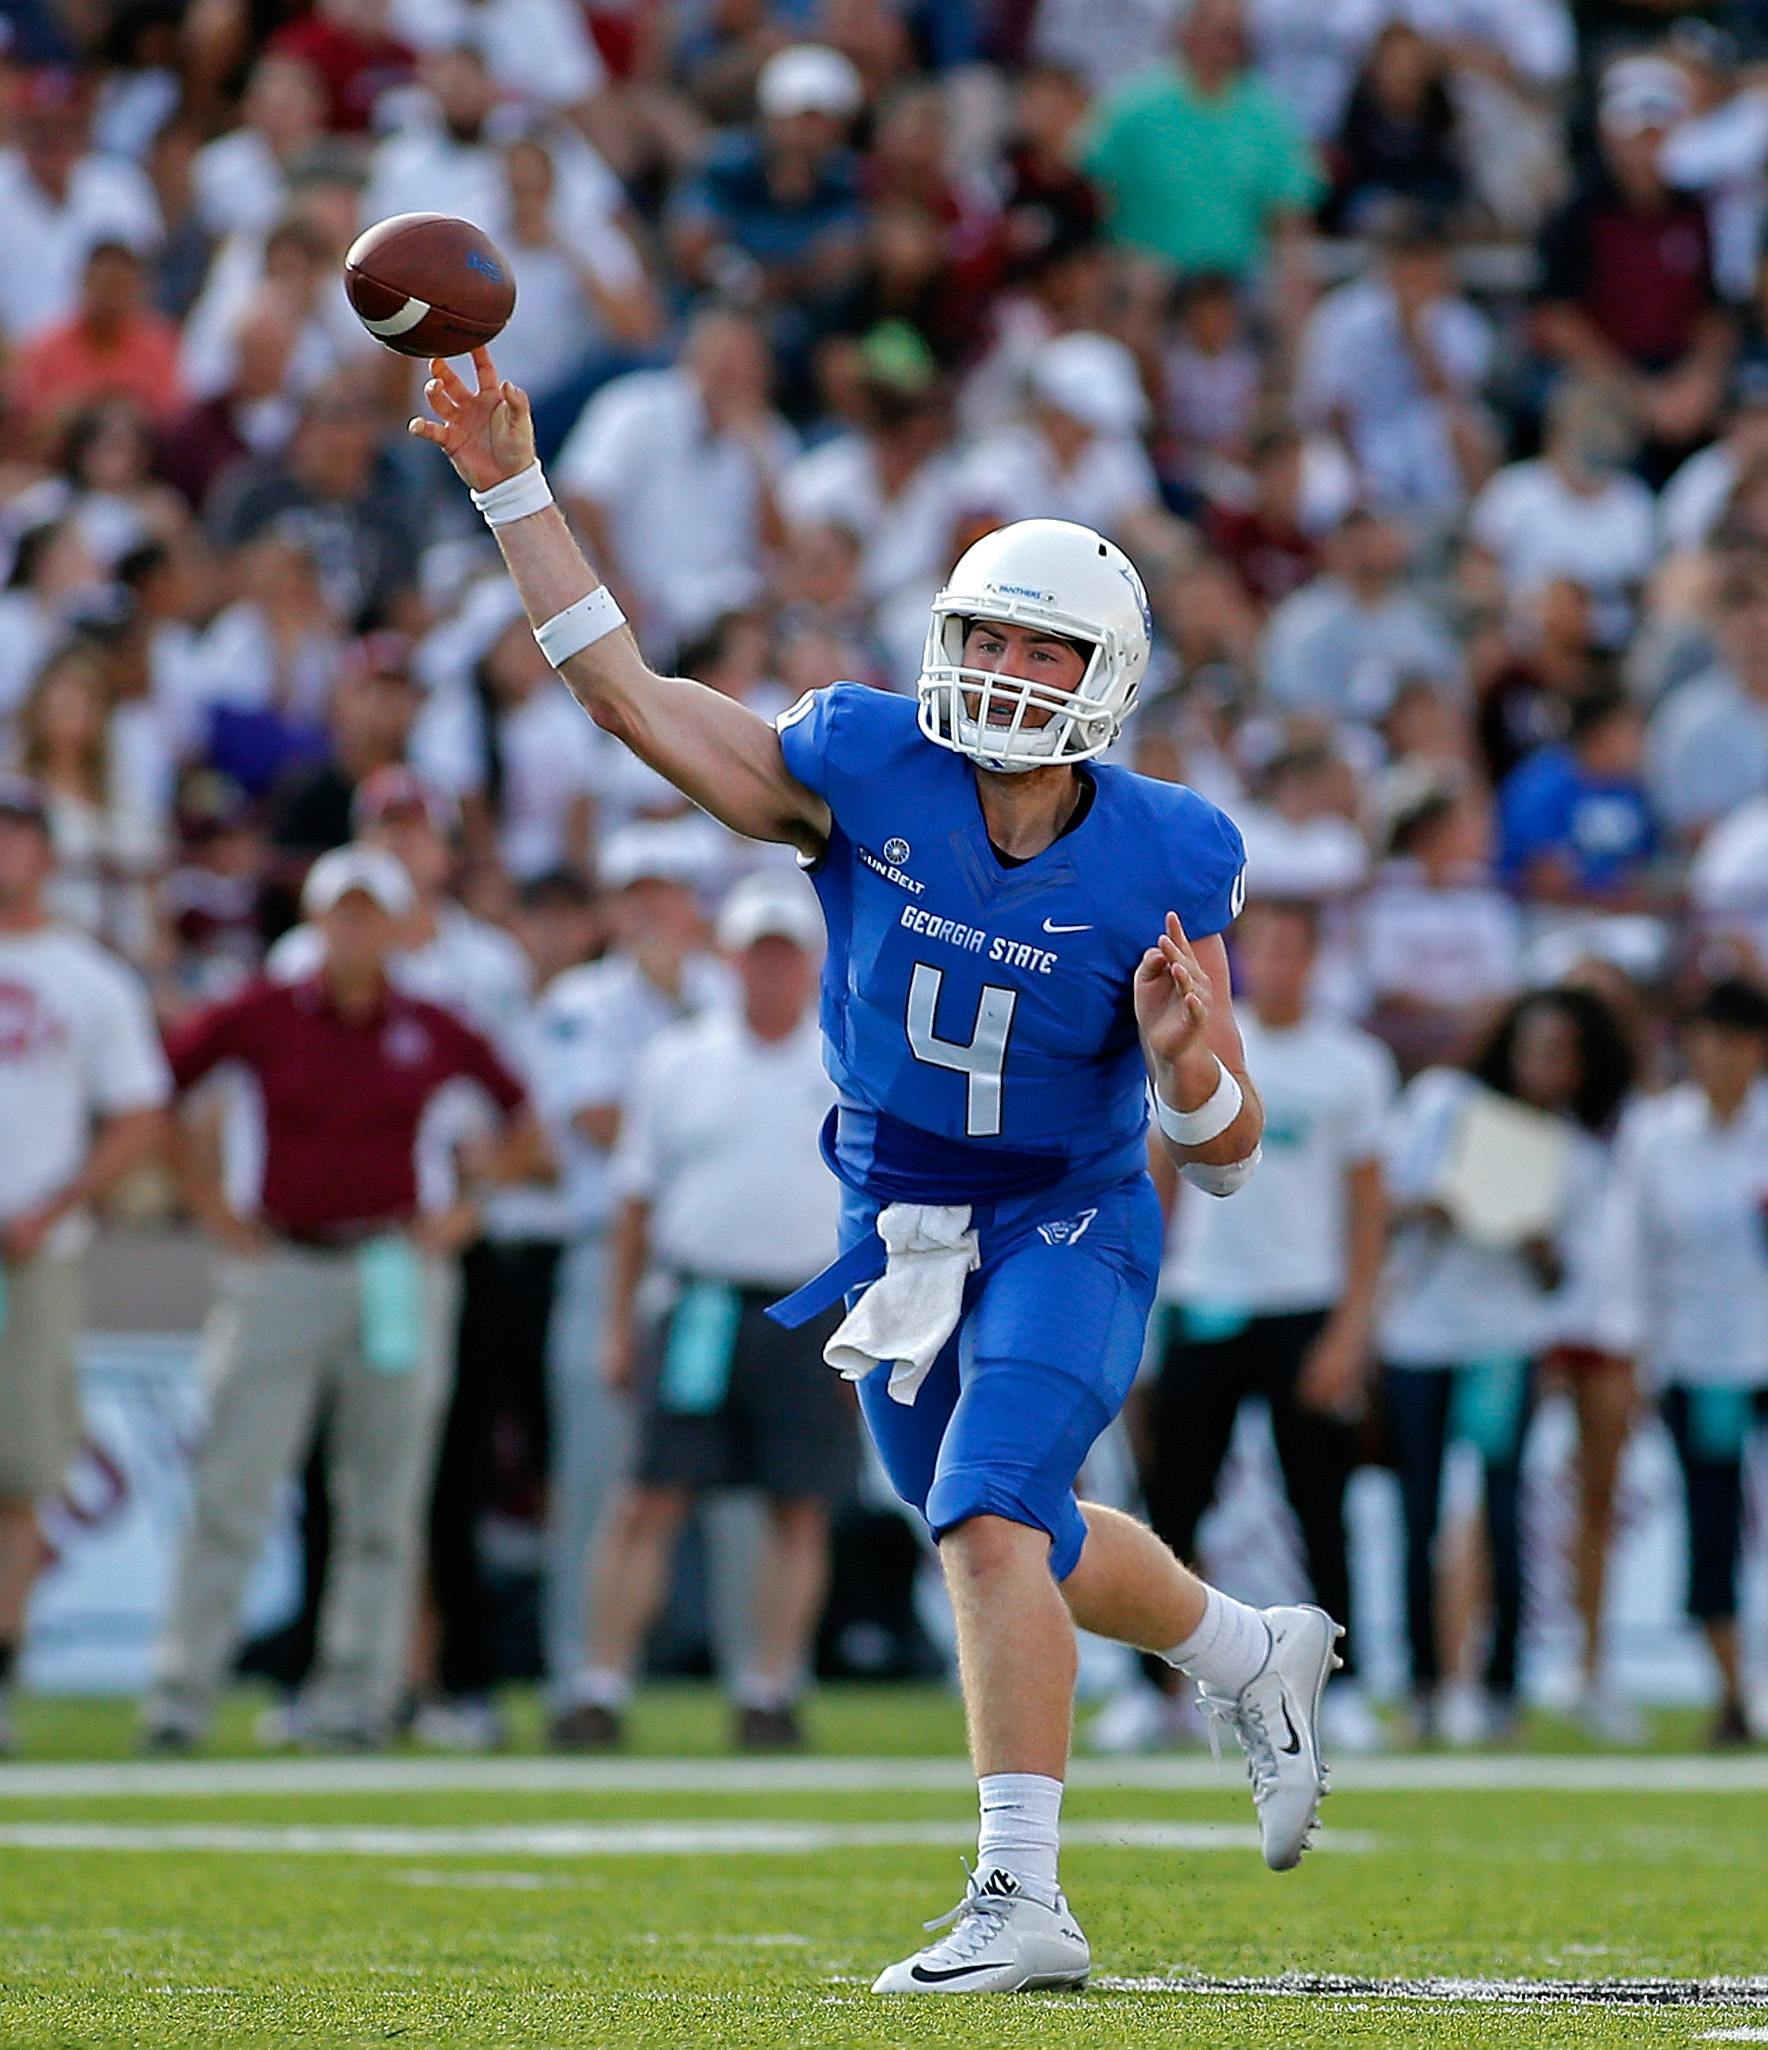 FILE - In this Sept. 12, 2015, file photo, Georgia State quarterback Nick Arbuckle throws during the first half of an NCAA college football game against New Mexico State in Las Cruces, N.M. Arbuckle surely had family and friends who wondered if he was thi